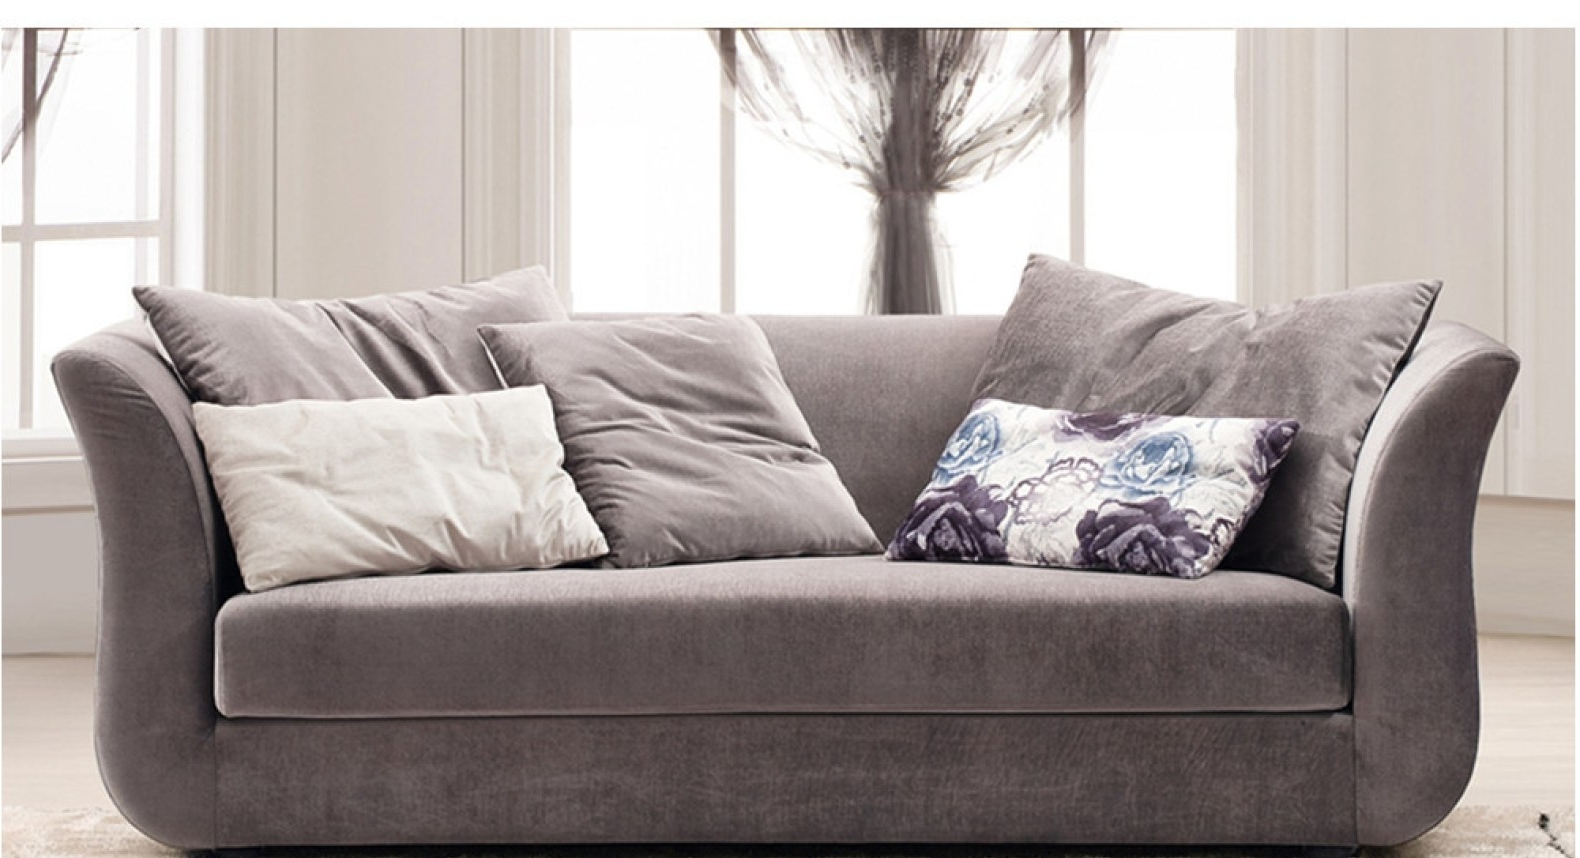 Popular Sofas With High Backs With Sofa : Delightful Sofa With High Back And Sides Stylish Sofas With (View 12 of 20)